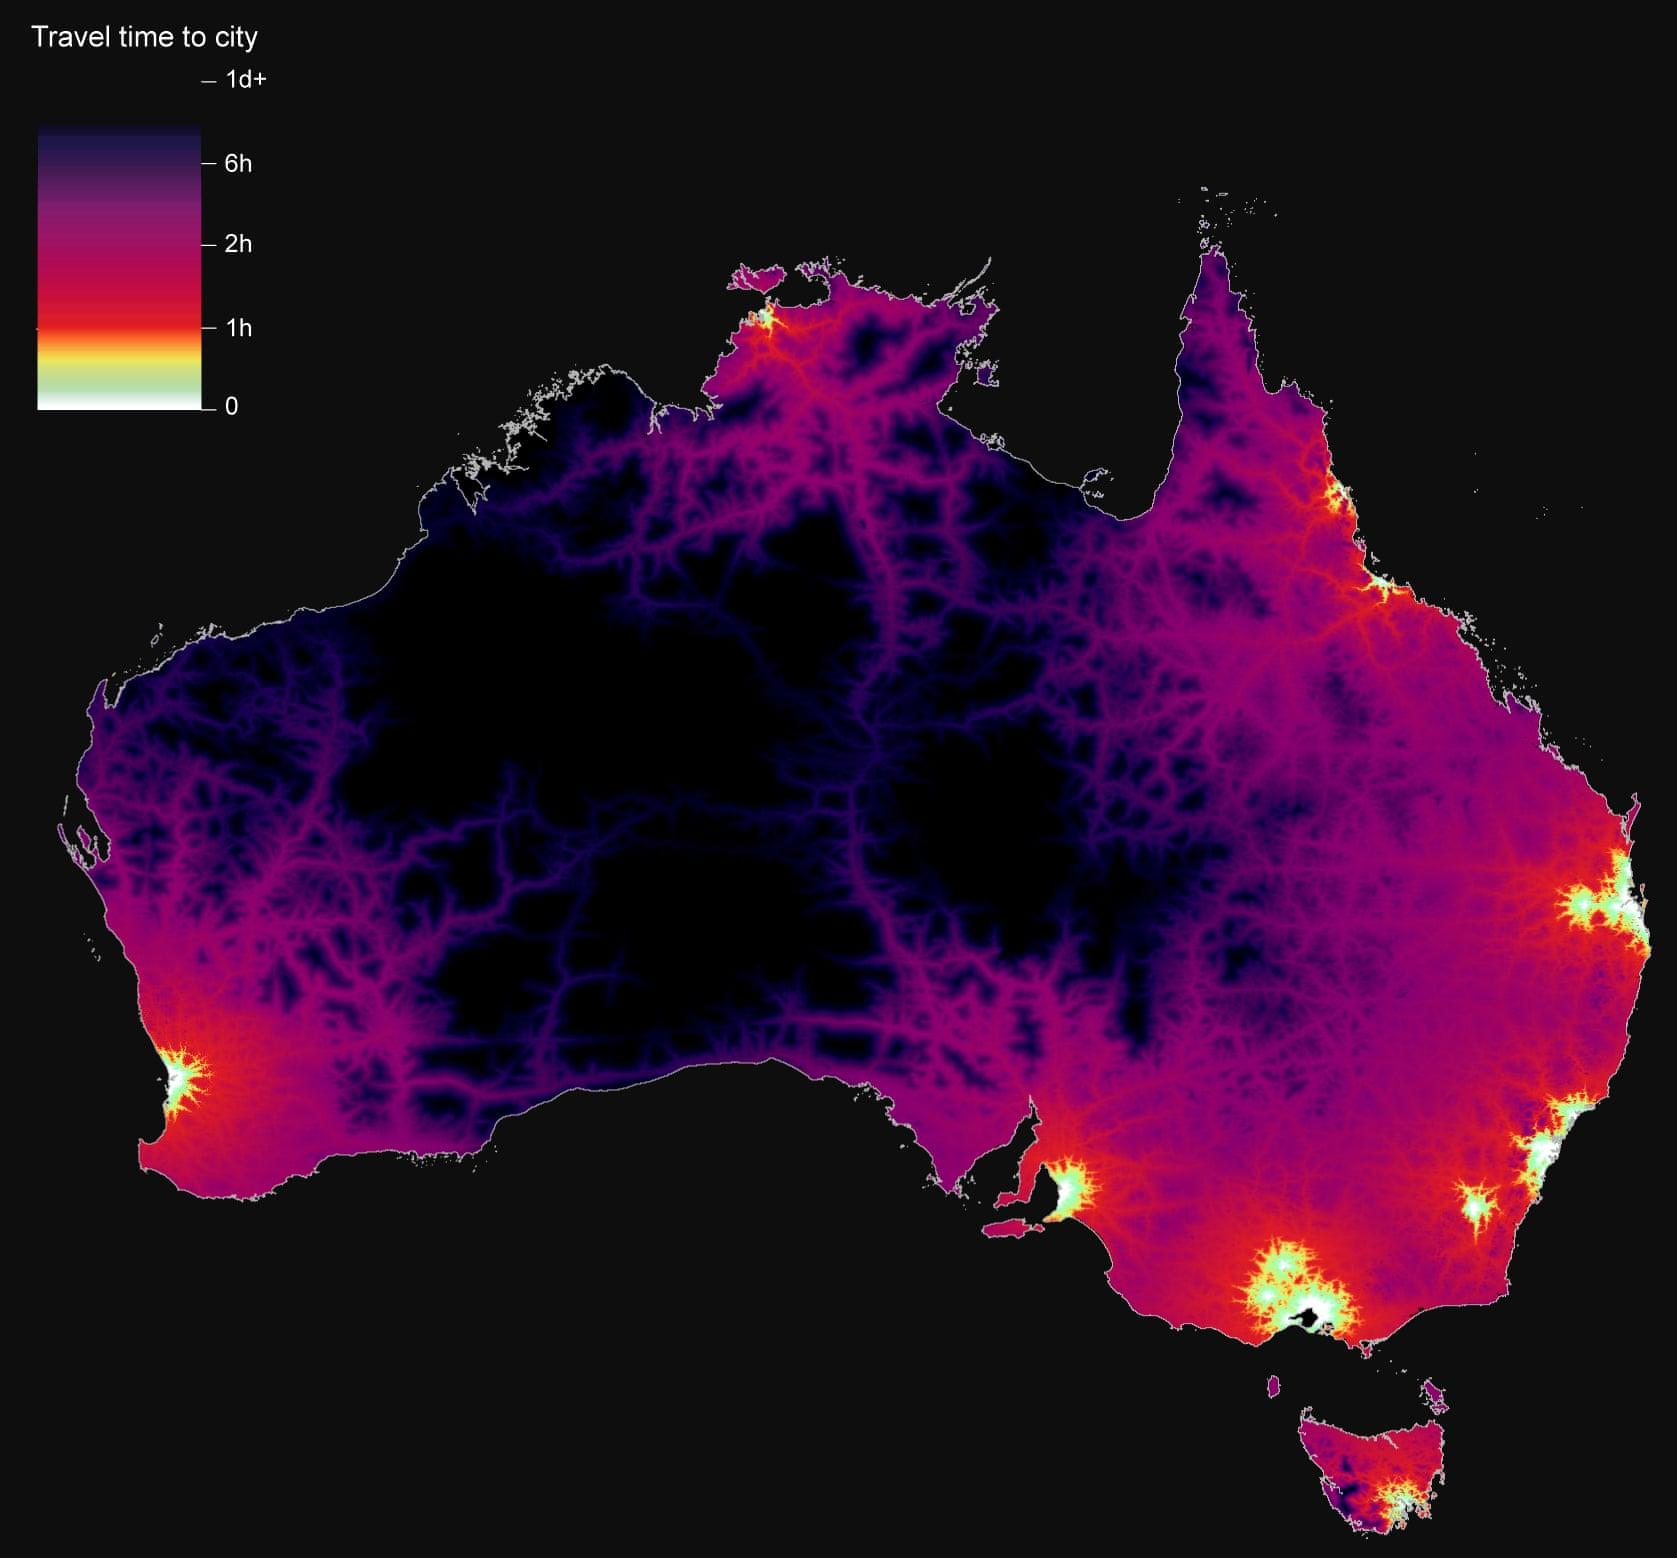 Australia: Travel time to the nearest city over 100 thousand population